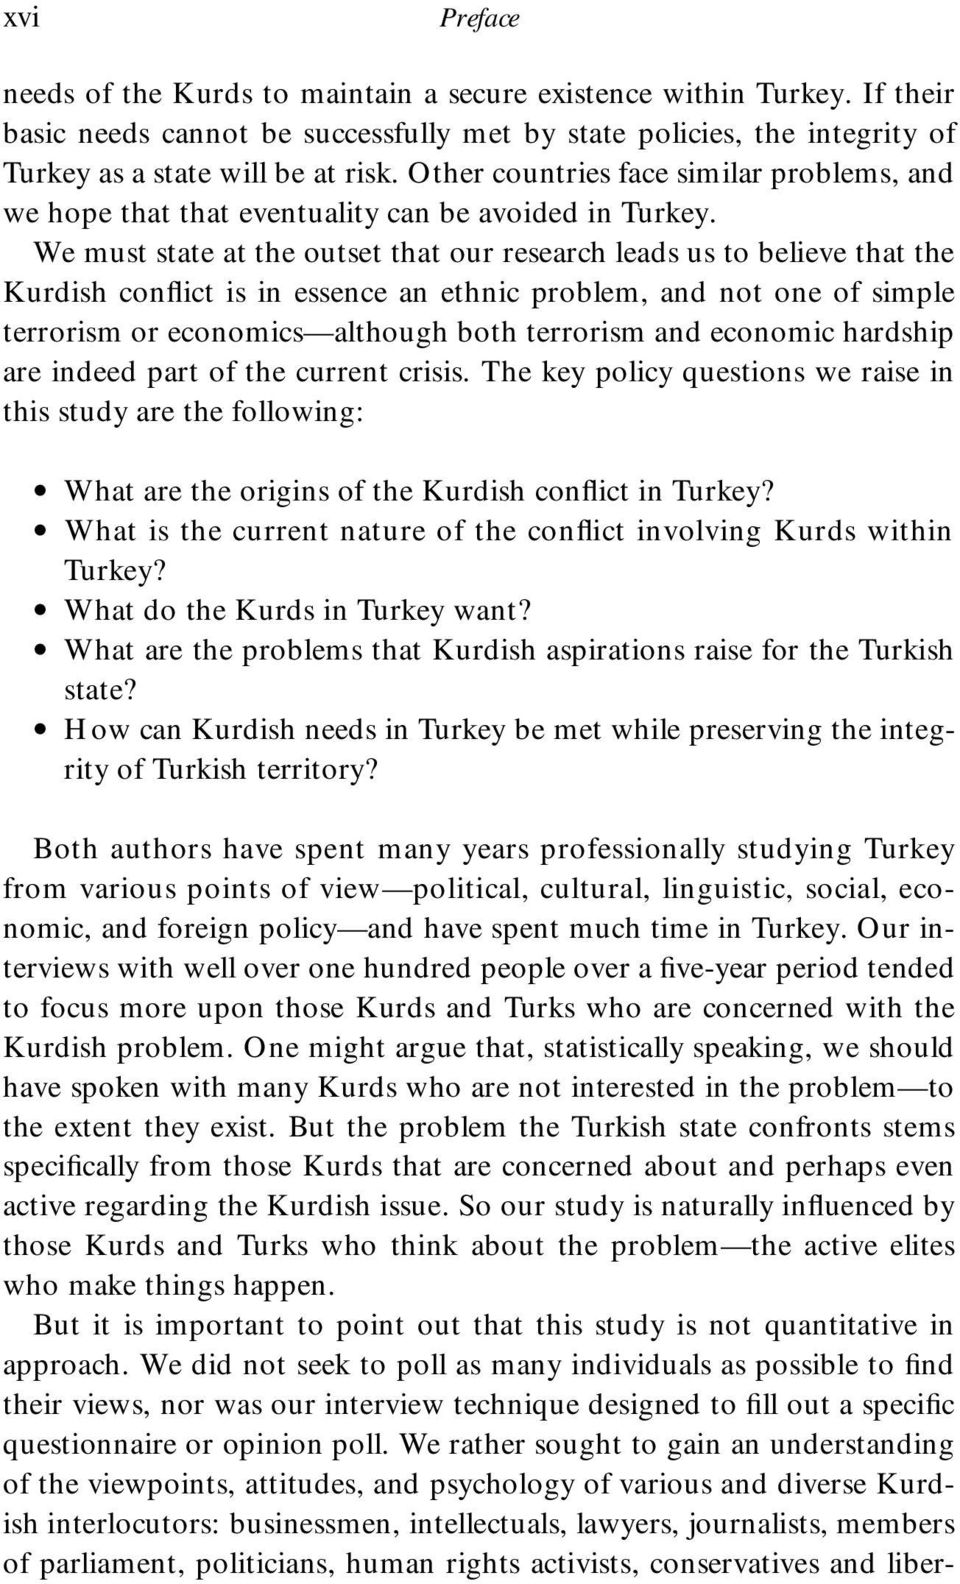 We must state at the outset that our research leads us to believe that the Kurdish conflict is in essence an ethnic problem, and not one of simple terrorism or economics although both terrorism and